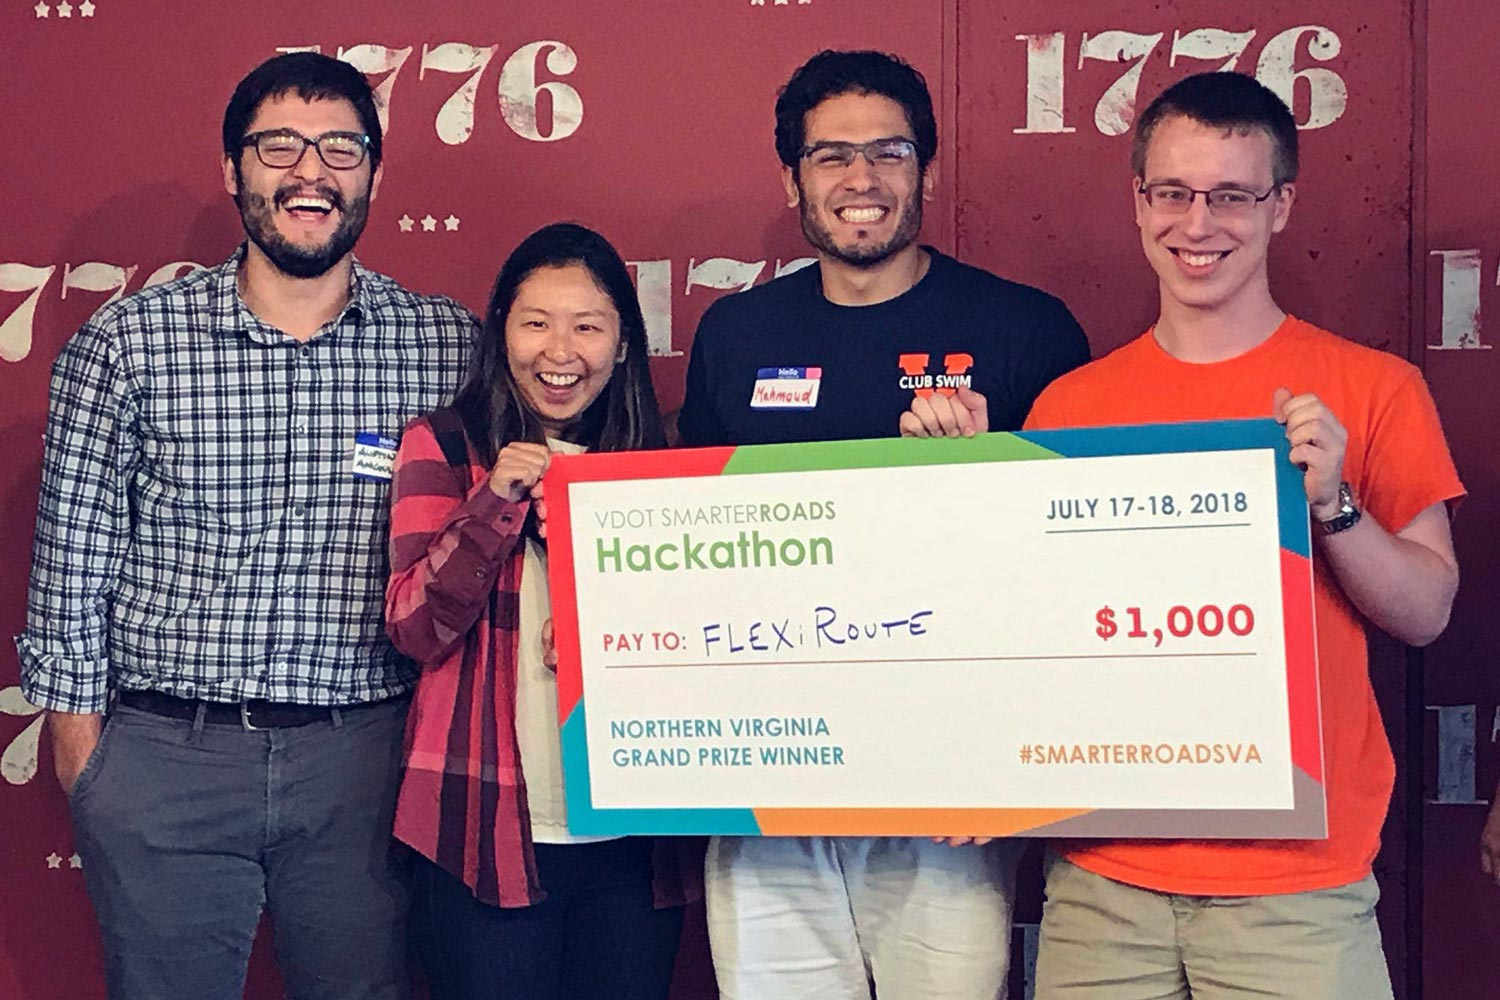 UVA students Austin Angulo, Xiaoxiao Zhang, Mahmoud Elnaggar and Wesley Daugherty won first place at the Virginia Department of Transportation's SmarterRoads Hackathon in Arlington last month. (Courtesy of VDOT)